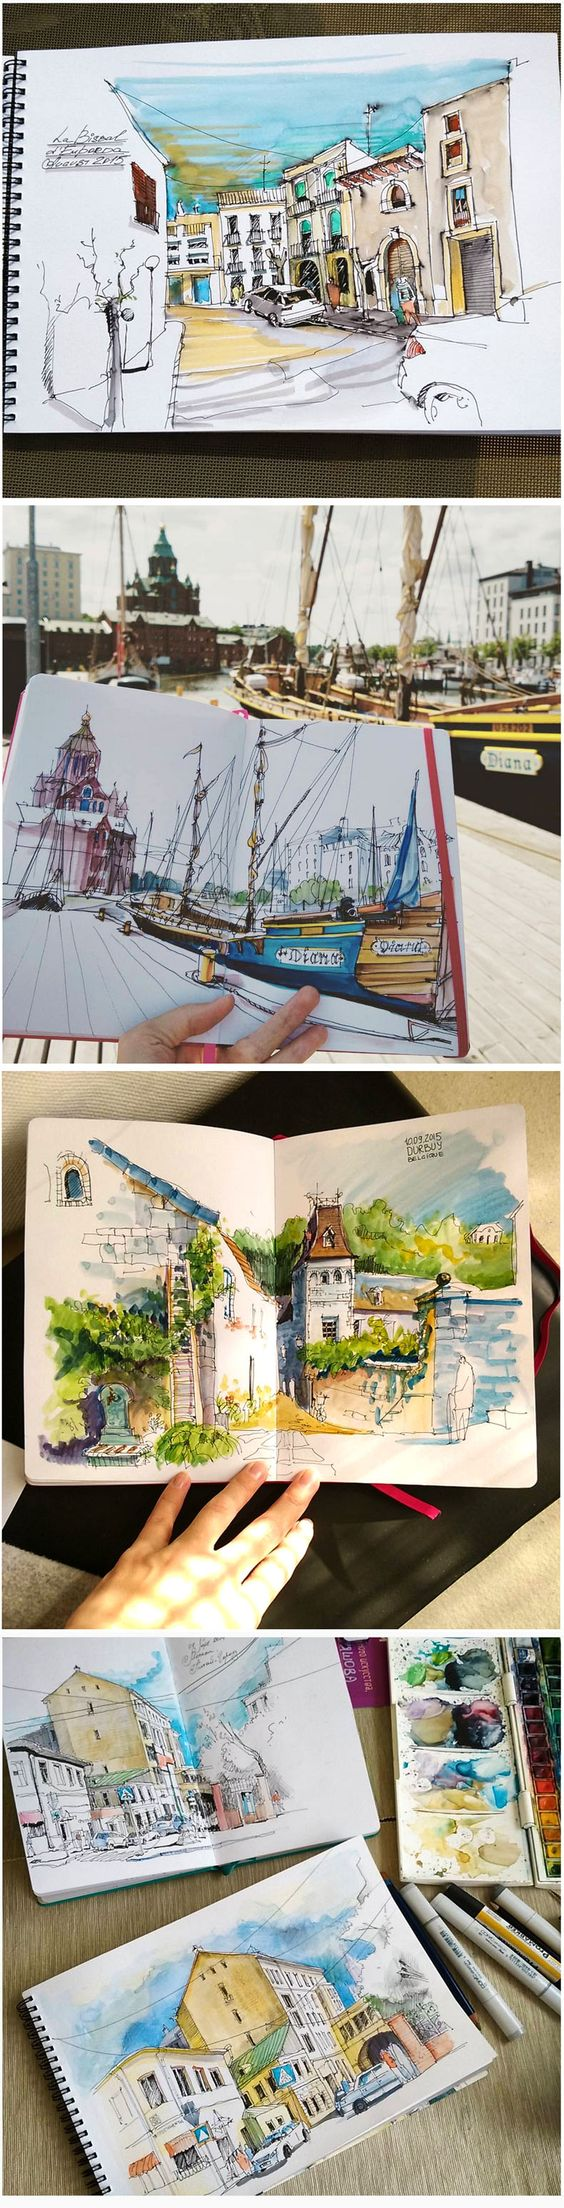 This image is of a beautiful journal created by   Alena Kudriashova